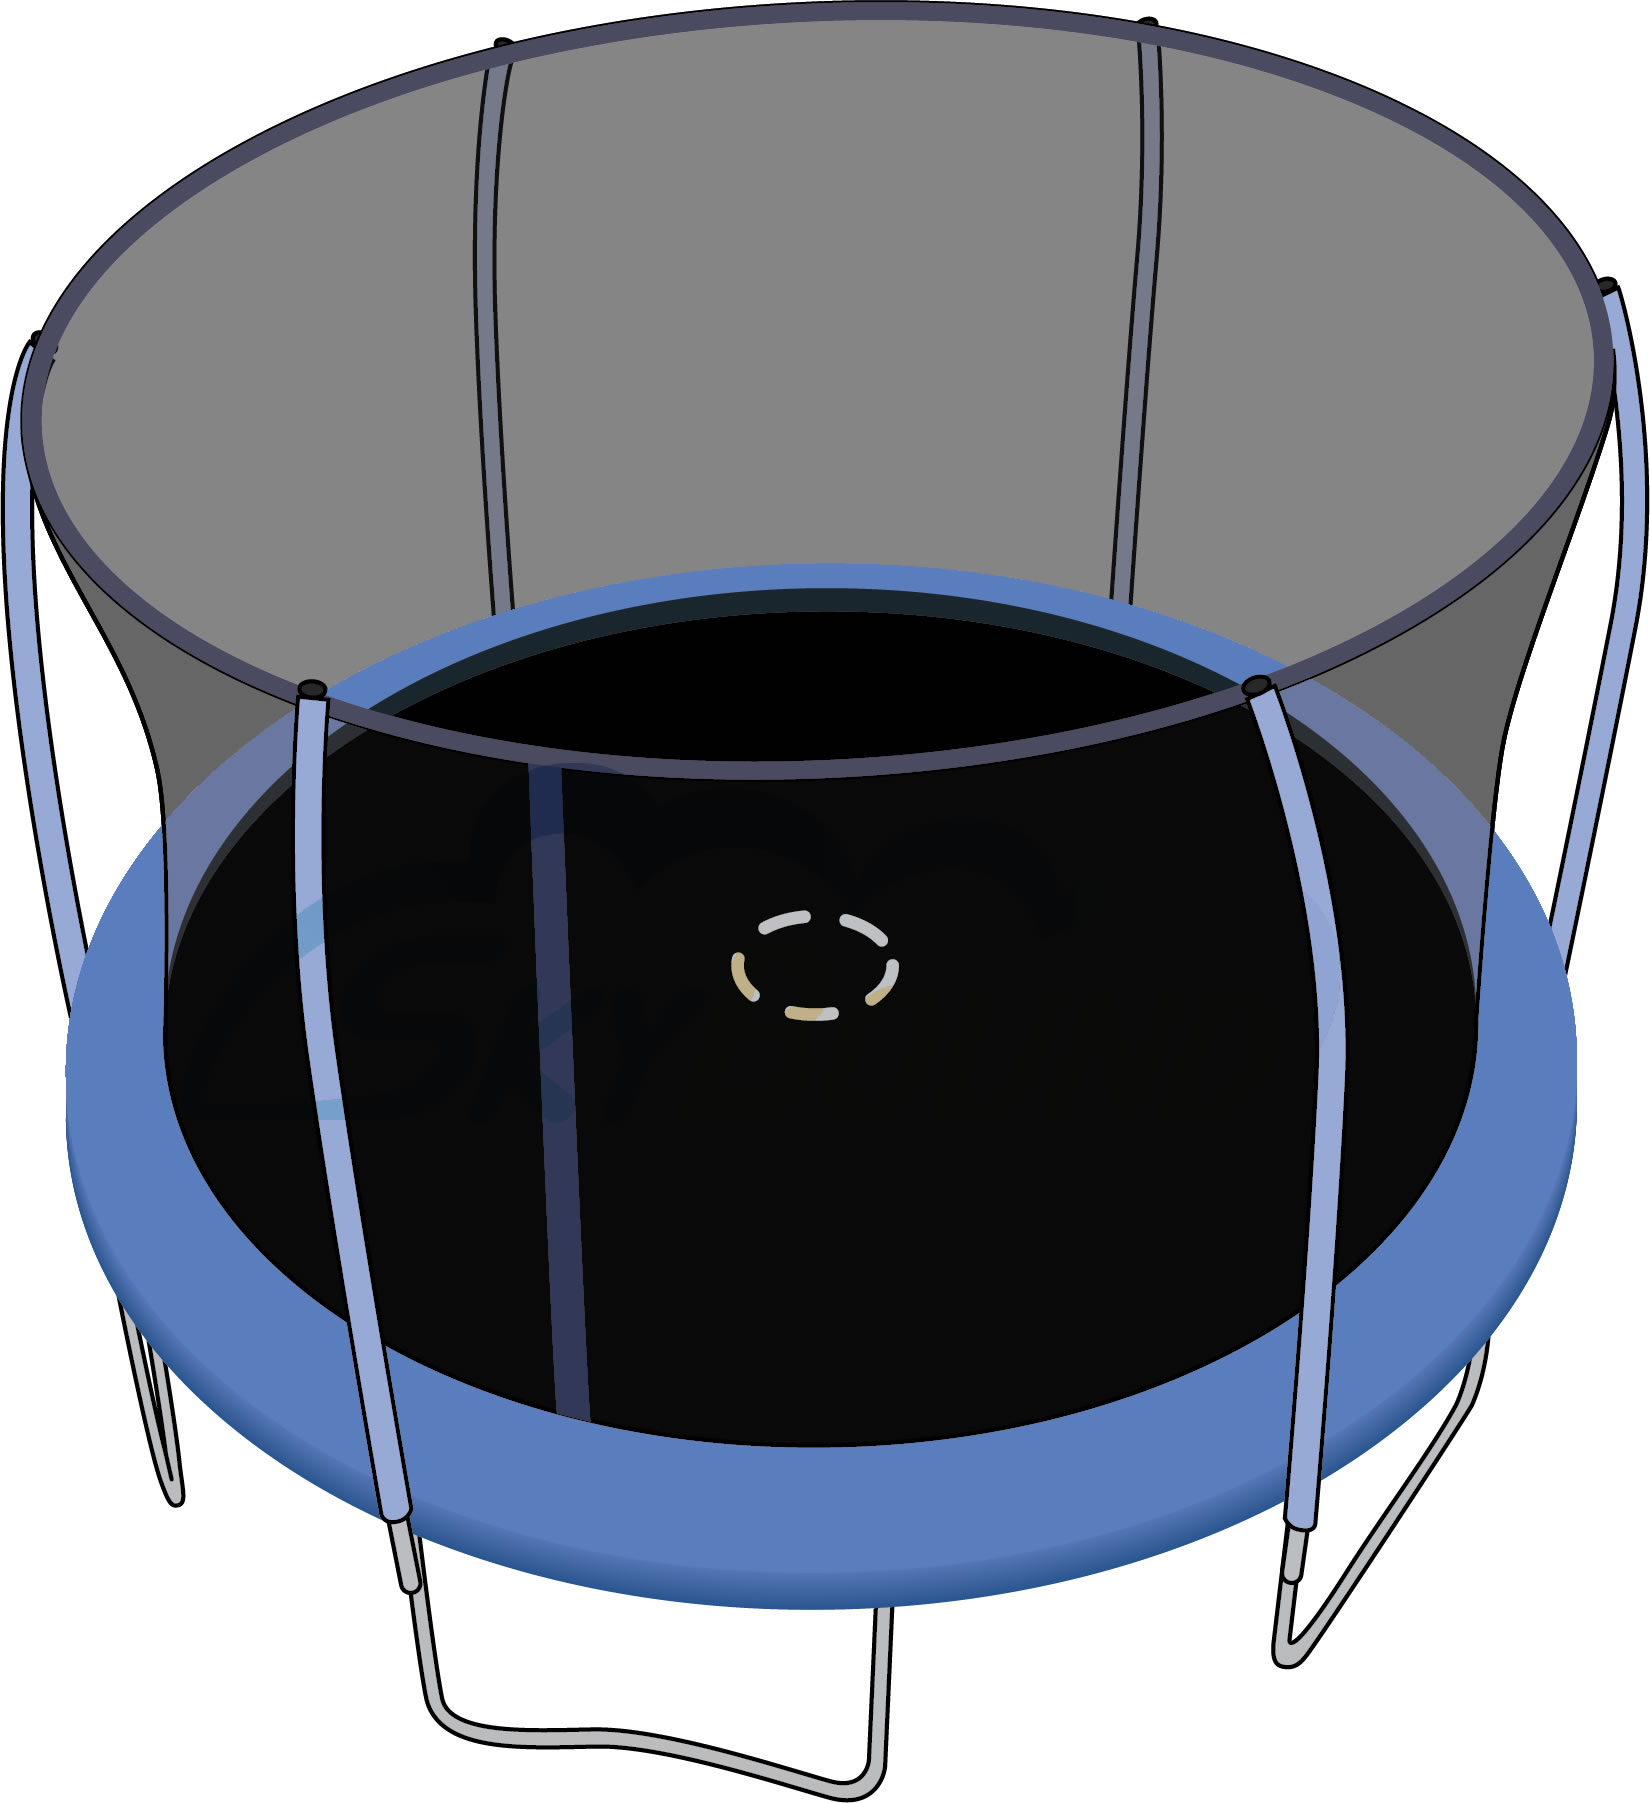 SkyBound 12-Foot Trampoline Net - Fits 6 Poles using a Top Ring